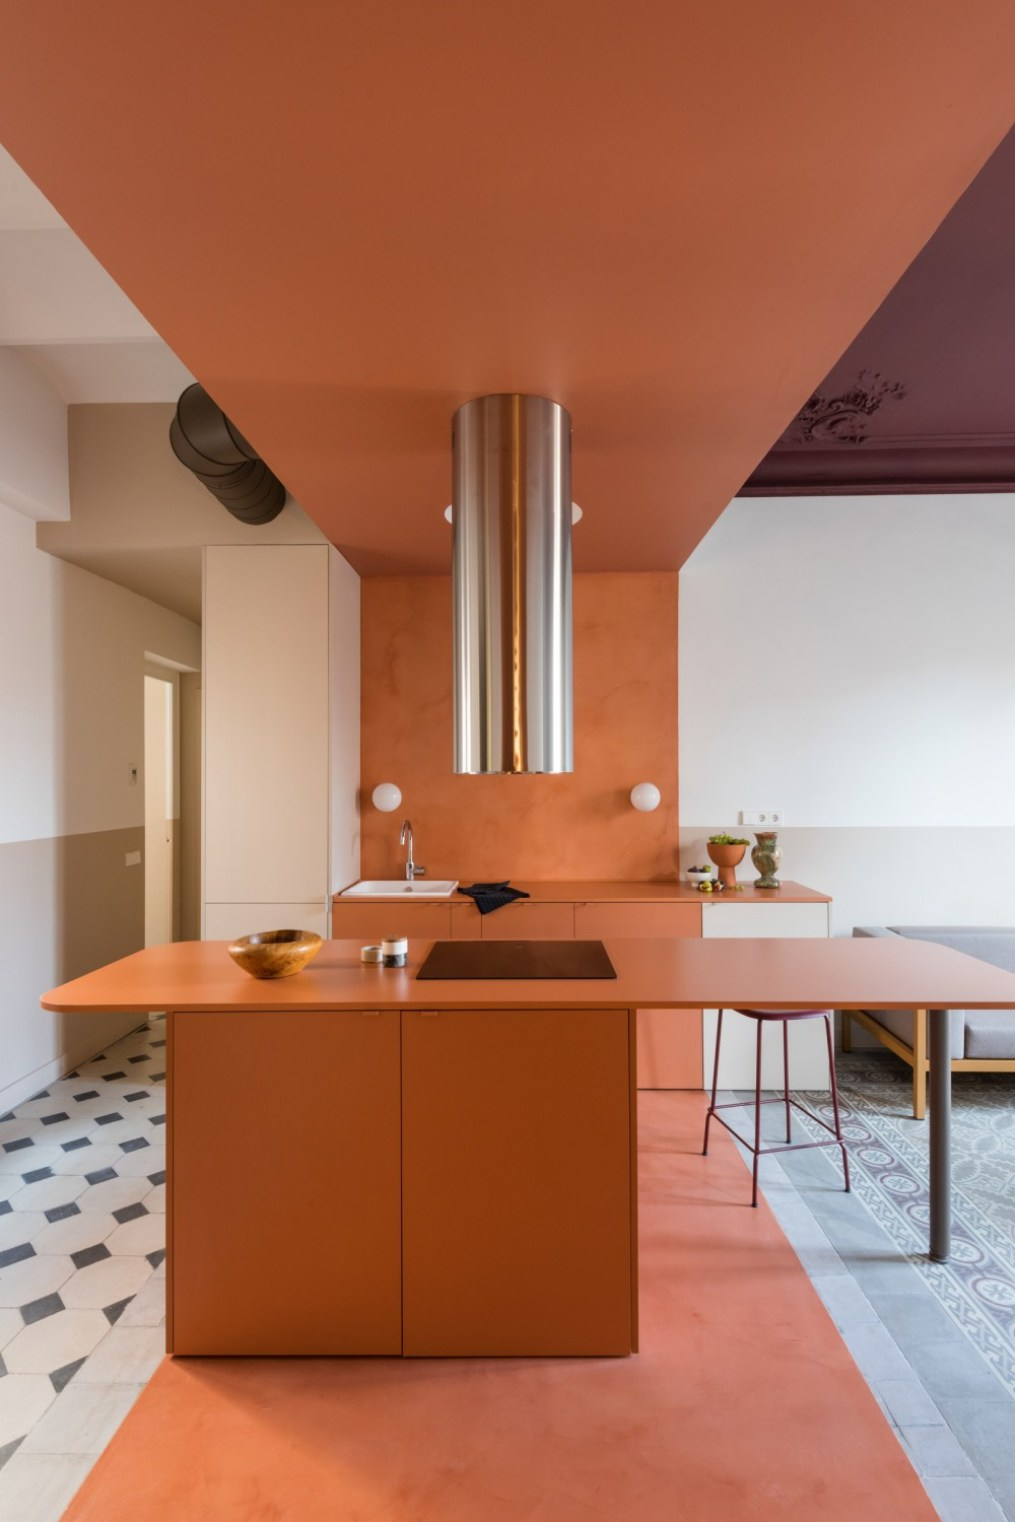 pAfter Microcement on the floors and backsplash match a terracotta stripe on the kitchen ceiling making for an a...